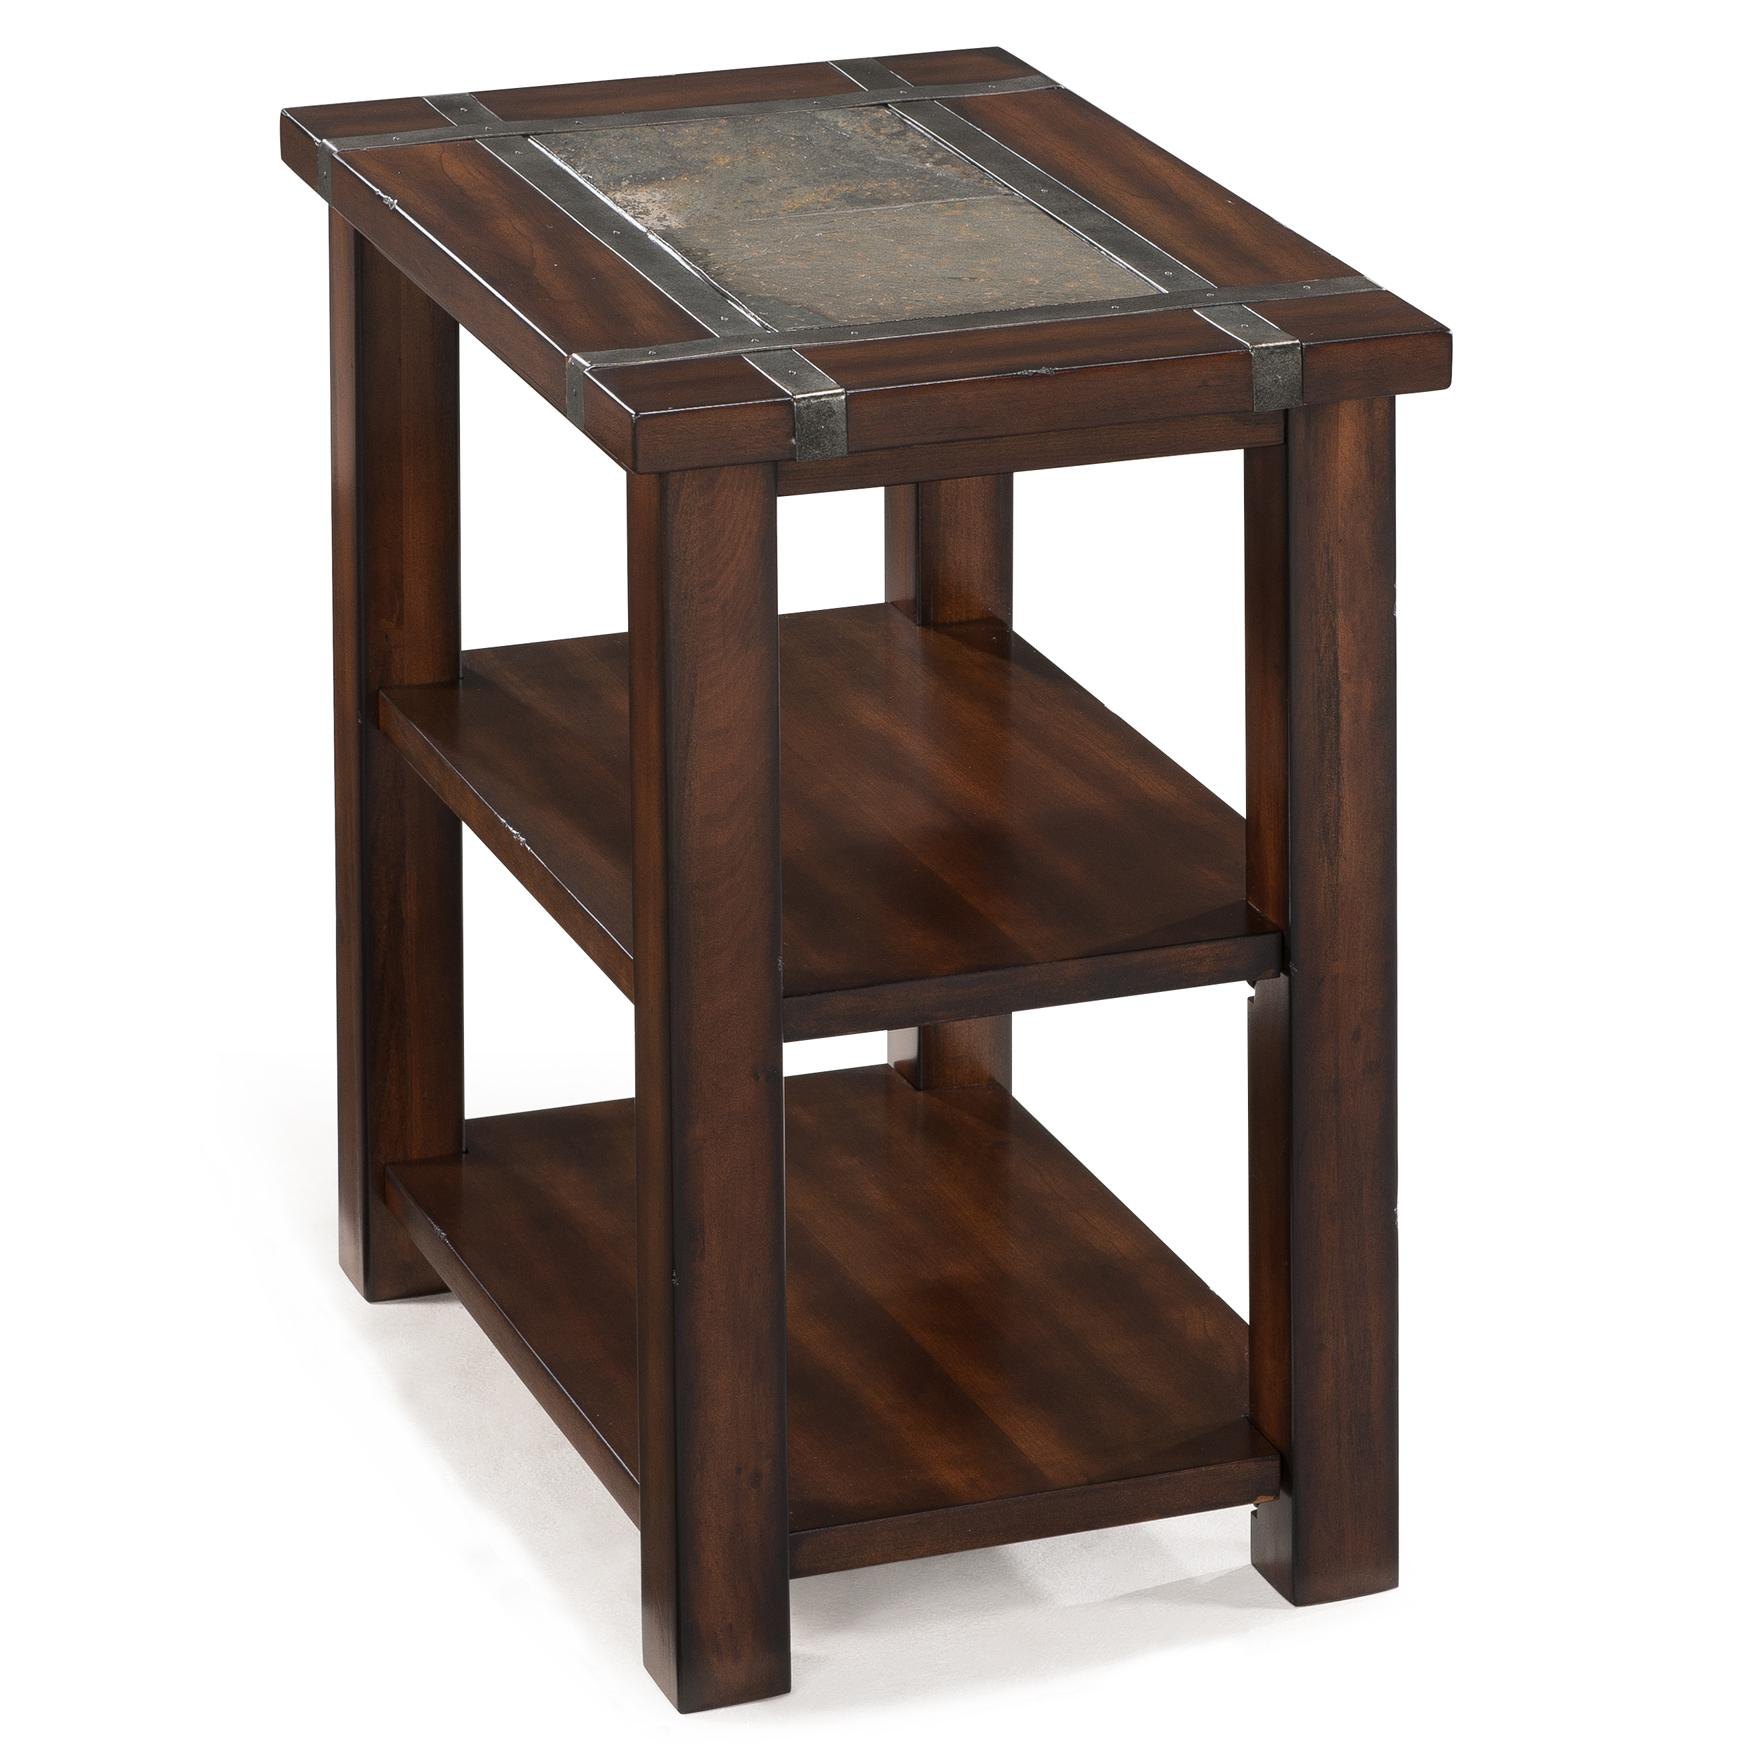 Roanoke Rectangular Chairside End Table by Magnussen Home at Baer's Furniture